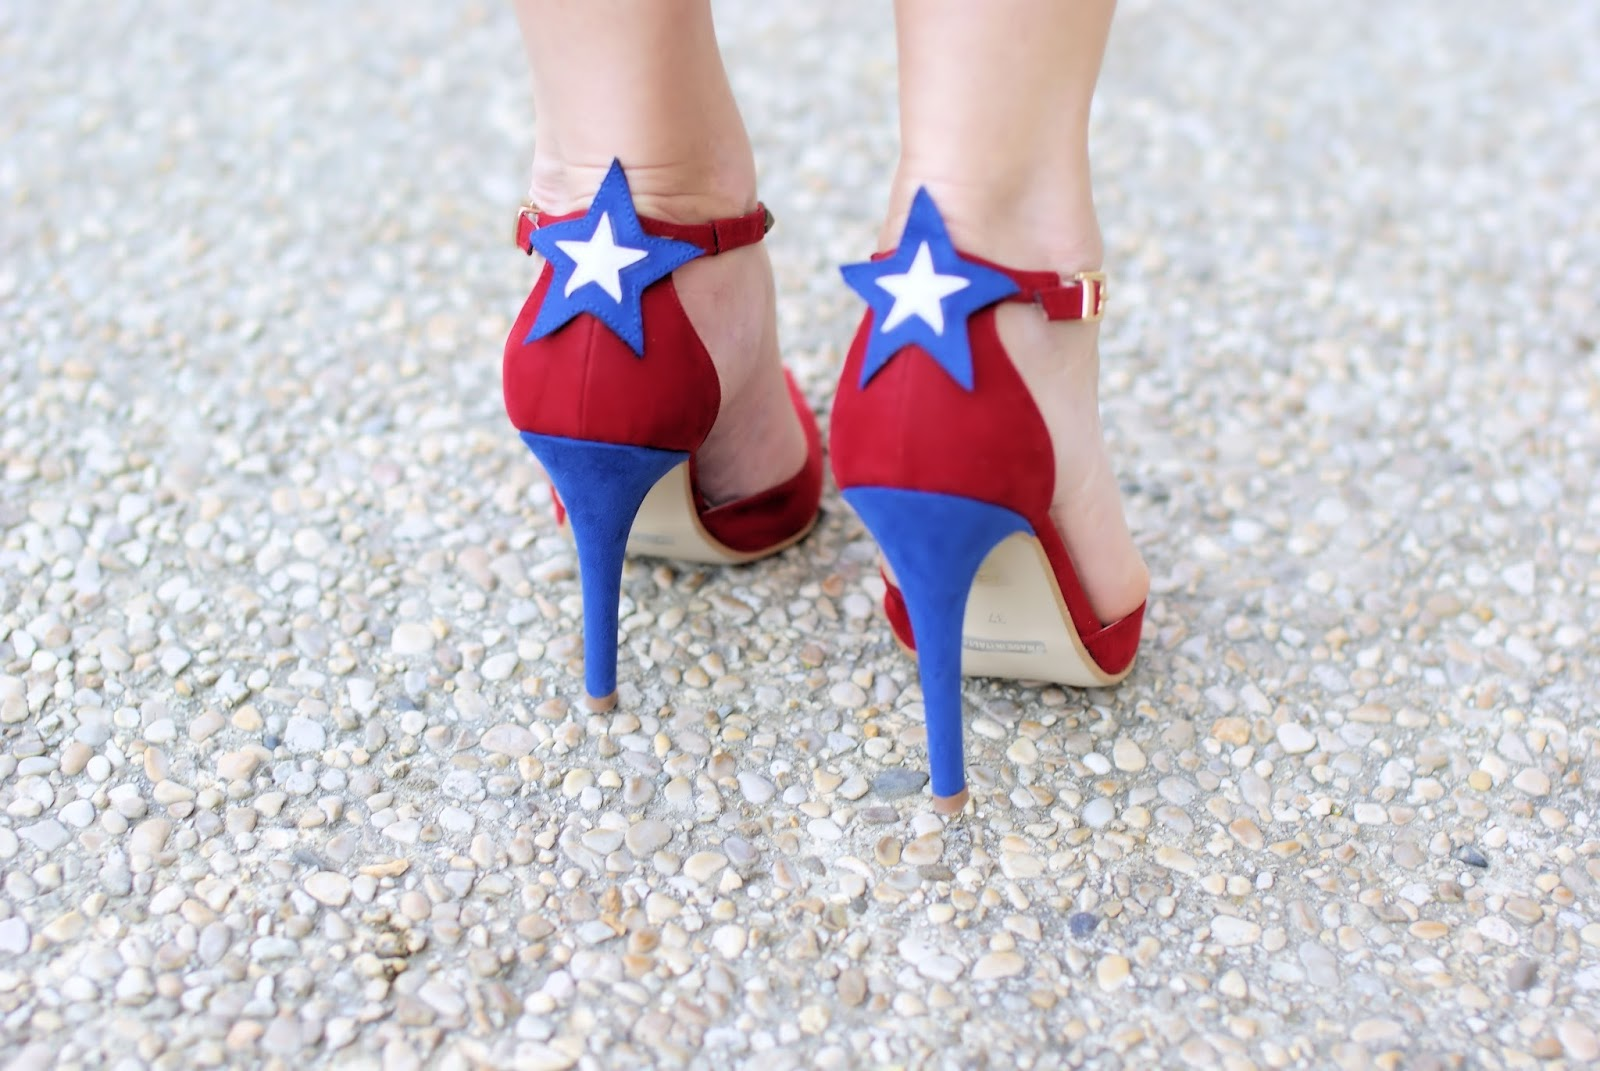 #SuperGirl pumps designed by Angela Pavese for Vigevano Shoes on Fashion and Cookies fashion blog, fashion blogger